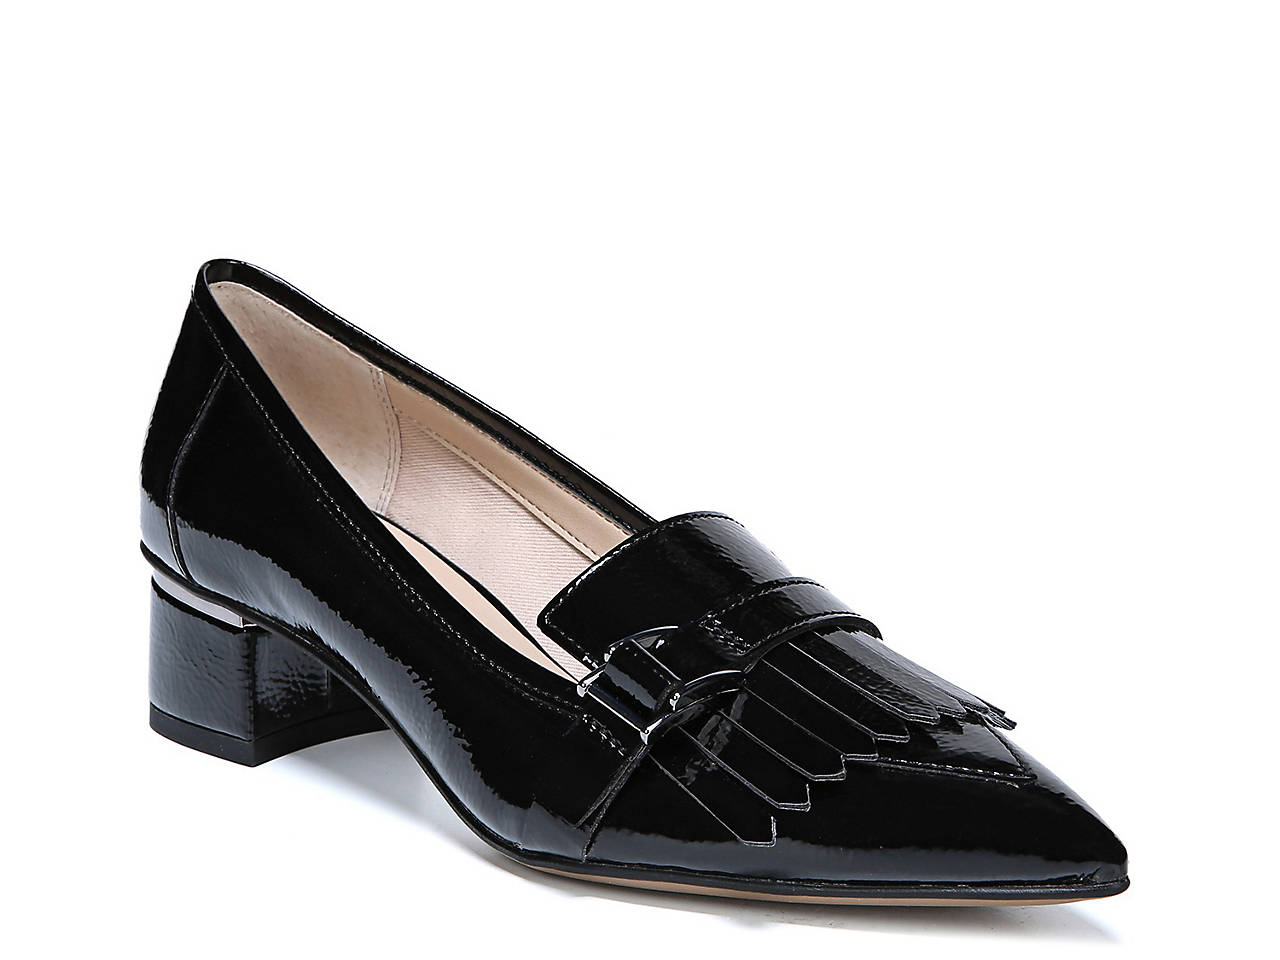 dd3a1ab250 Franco Sarto Grenoble Loafer Women s Shoes